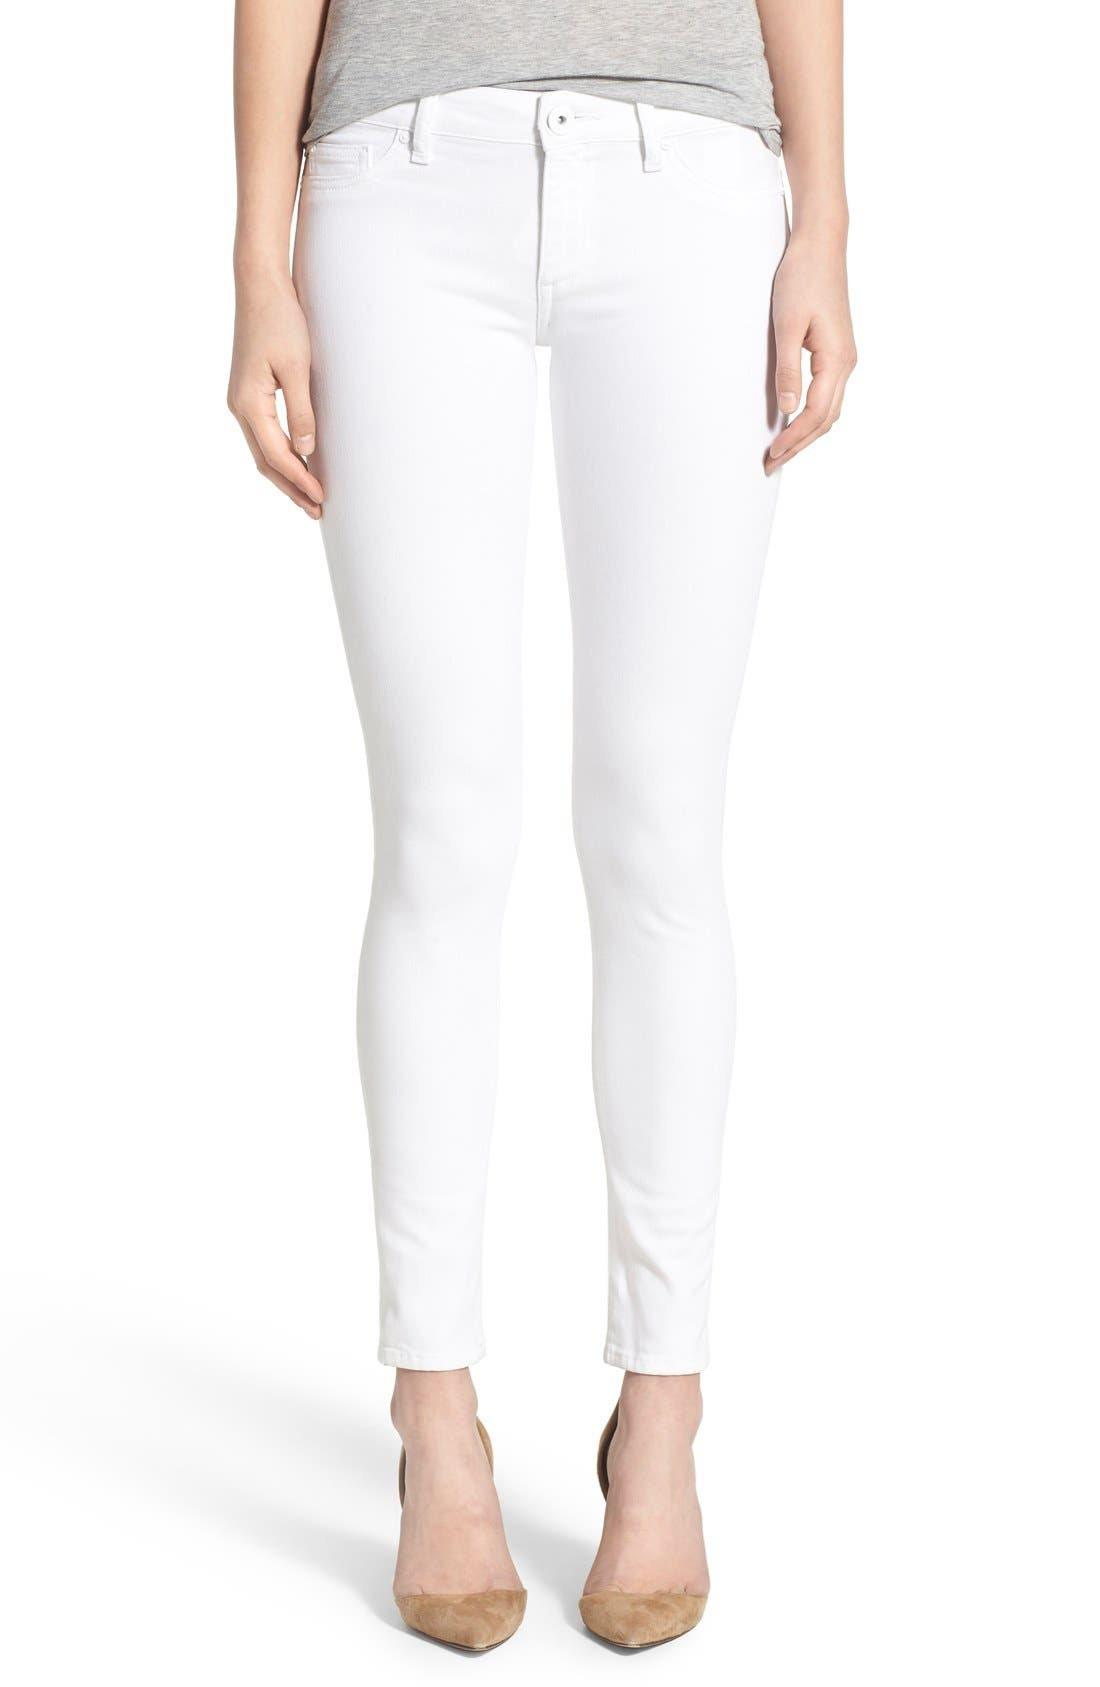 'Emma' Power Legging Jeans,                             Main thumbnail 1, color,                             Porcelain